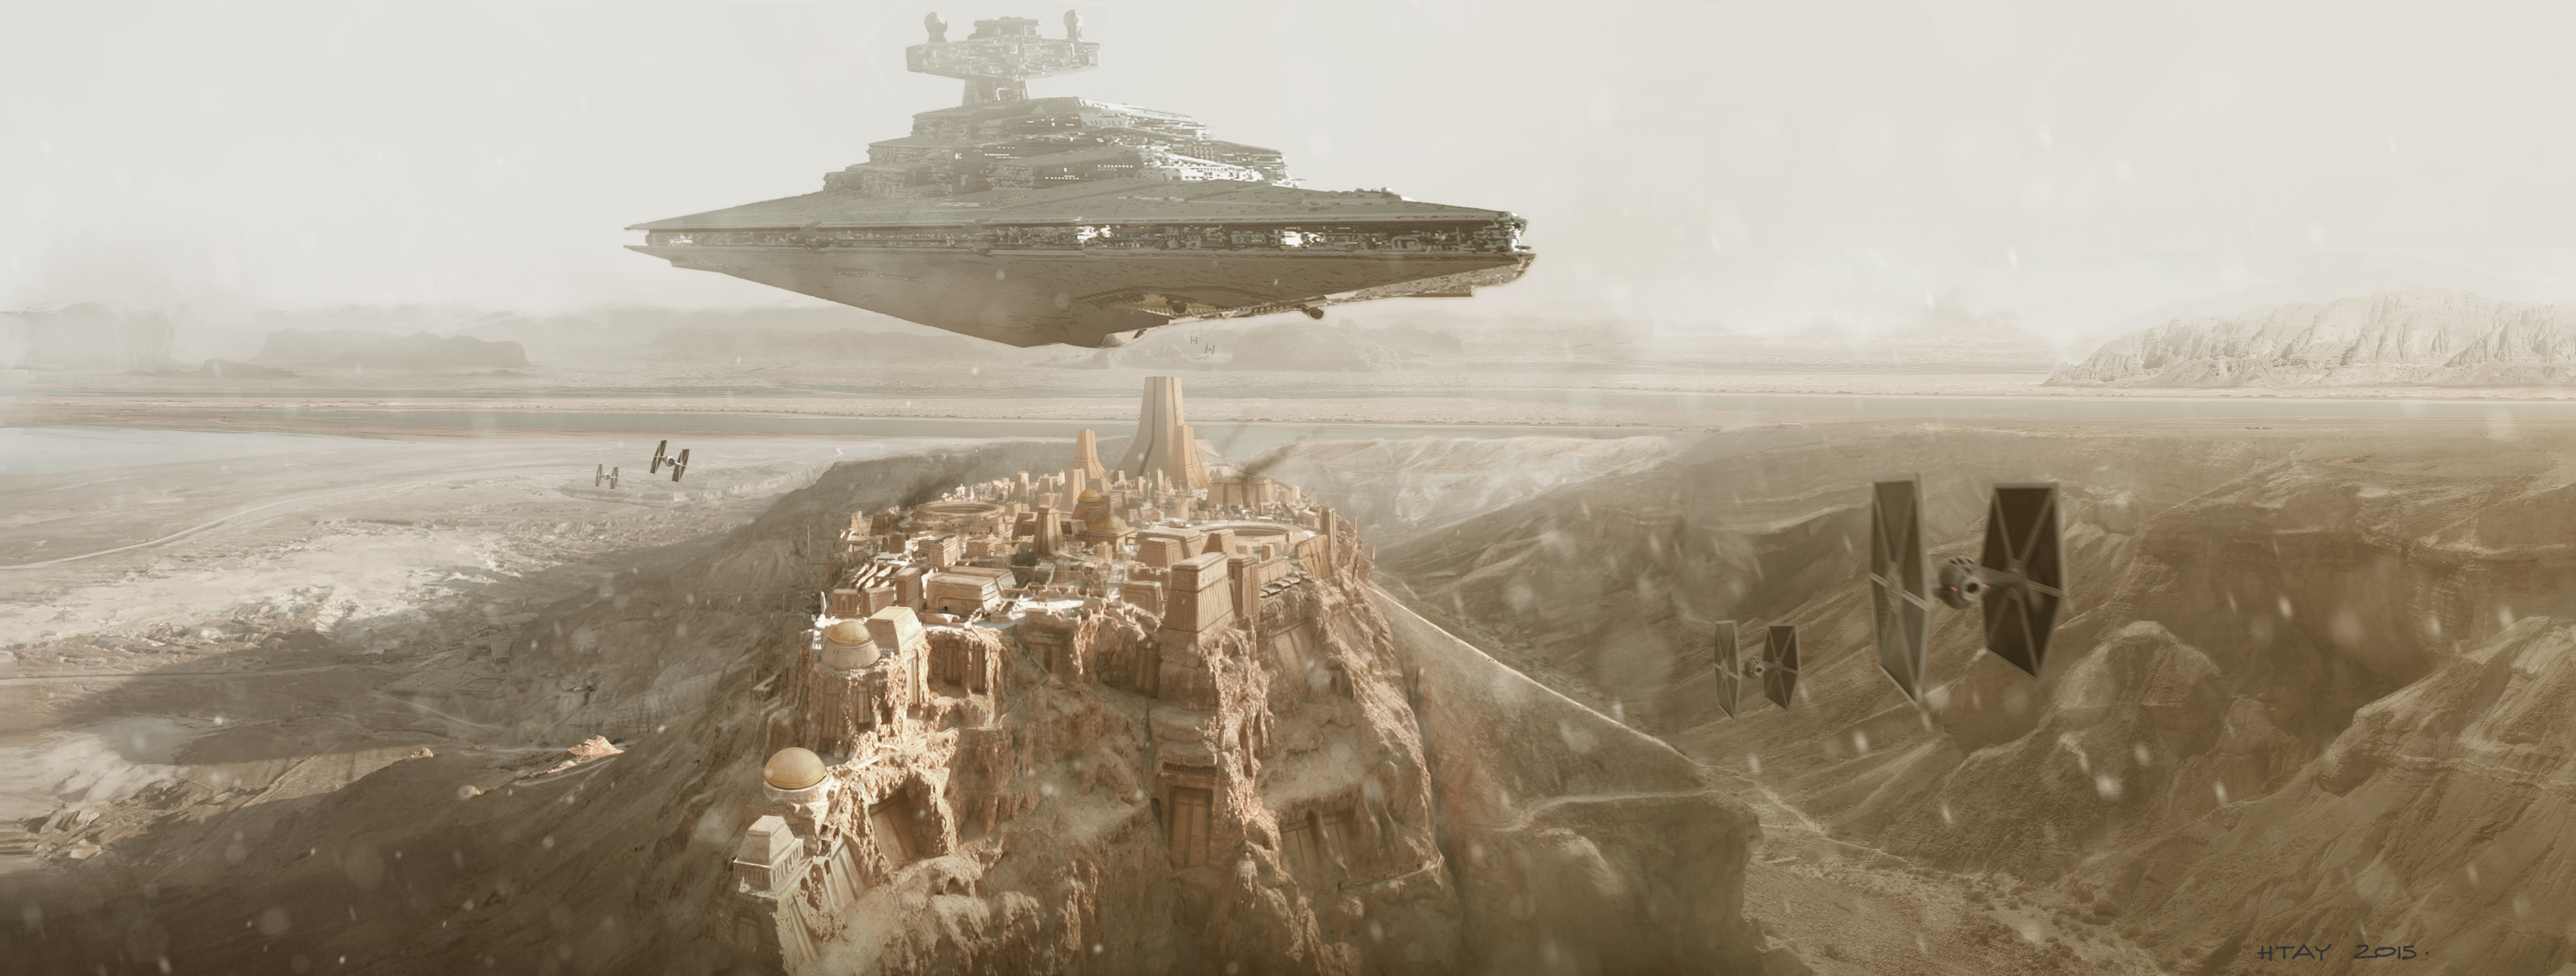 the-art-of-rogue-one-jedha-wide-overview